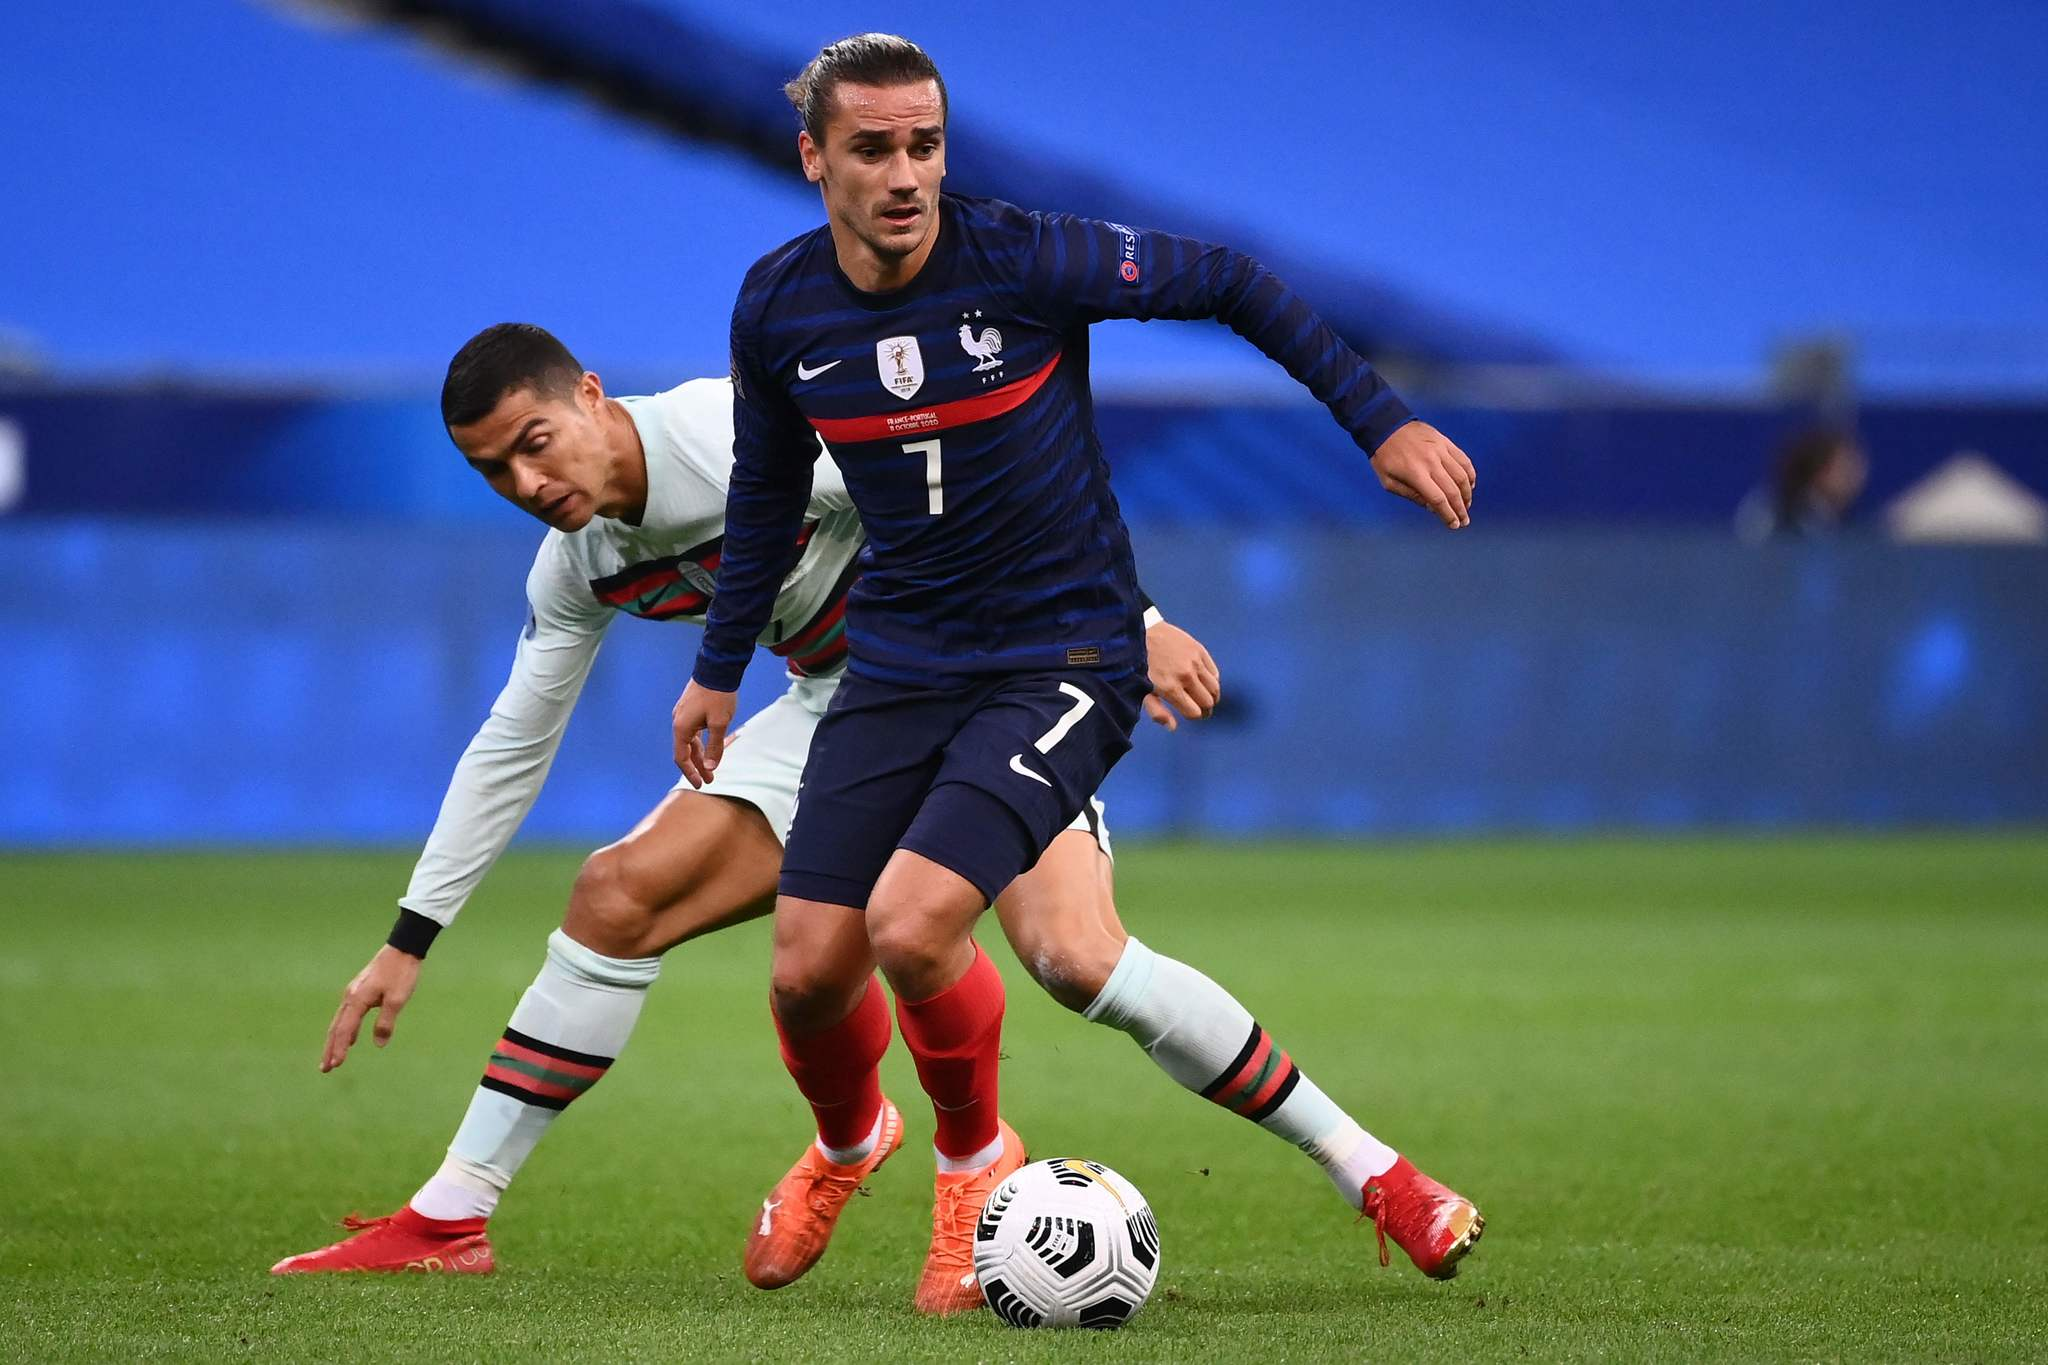 Frances forward Antoine lt;HIT gt;Griezmann lt;/HIT gt; (C) vies with Portugals forward Ronaldo during the Nations League football match between France and Portugal, on October 11, 2020 at the Stade de France in Saint-Denis, outside Paris. (Photo by FRANCK FIFE / AFP)